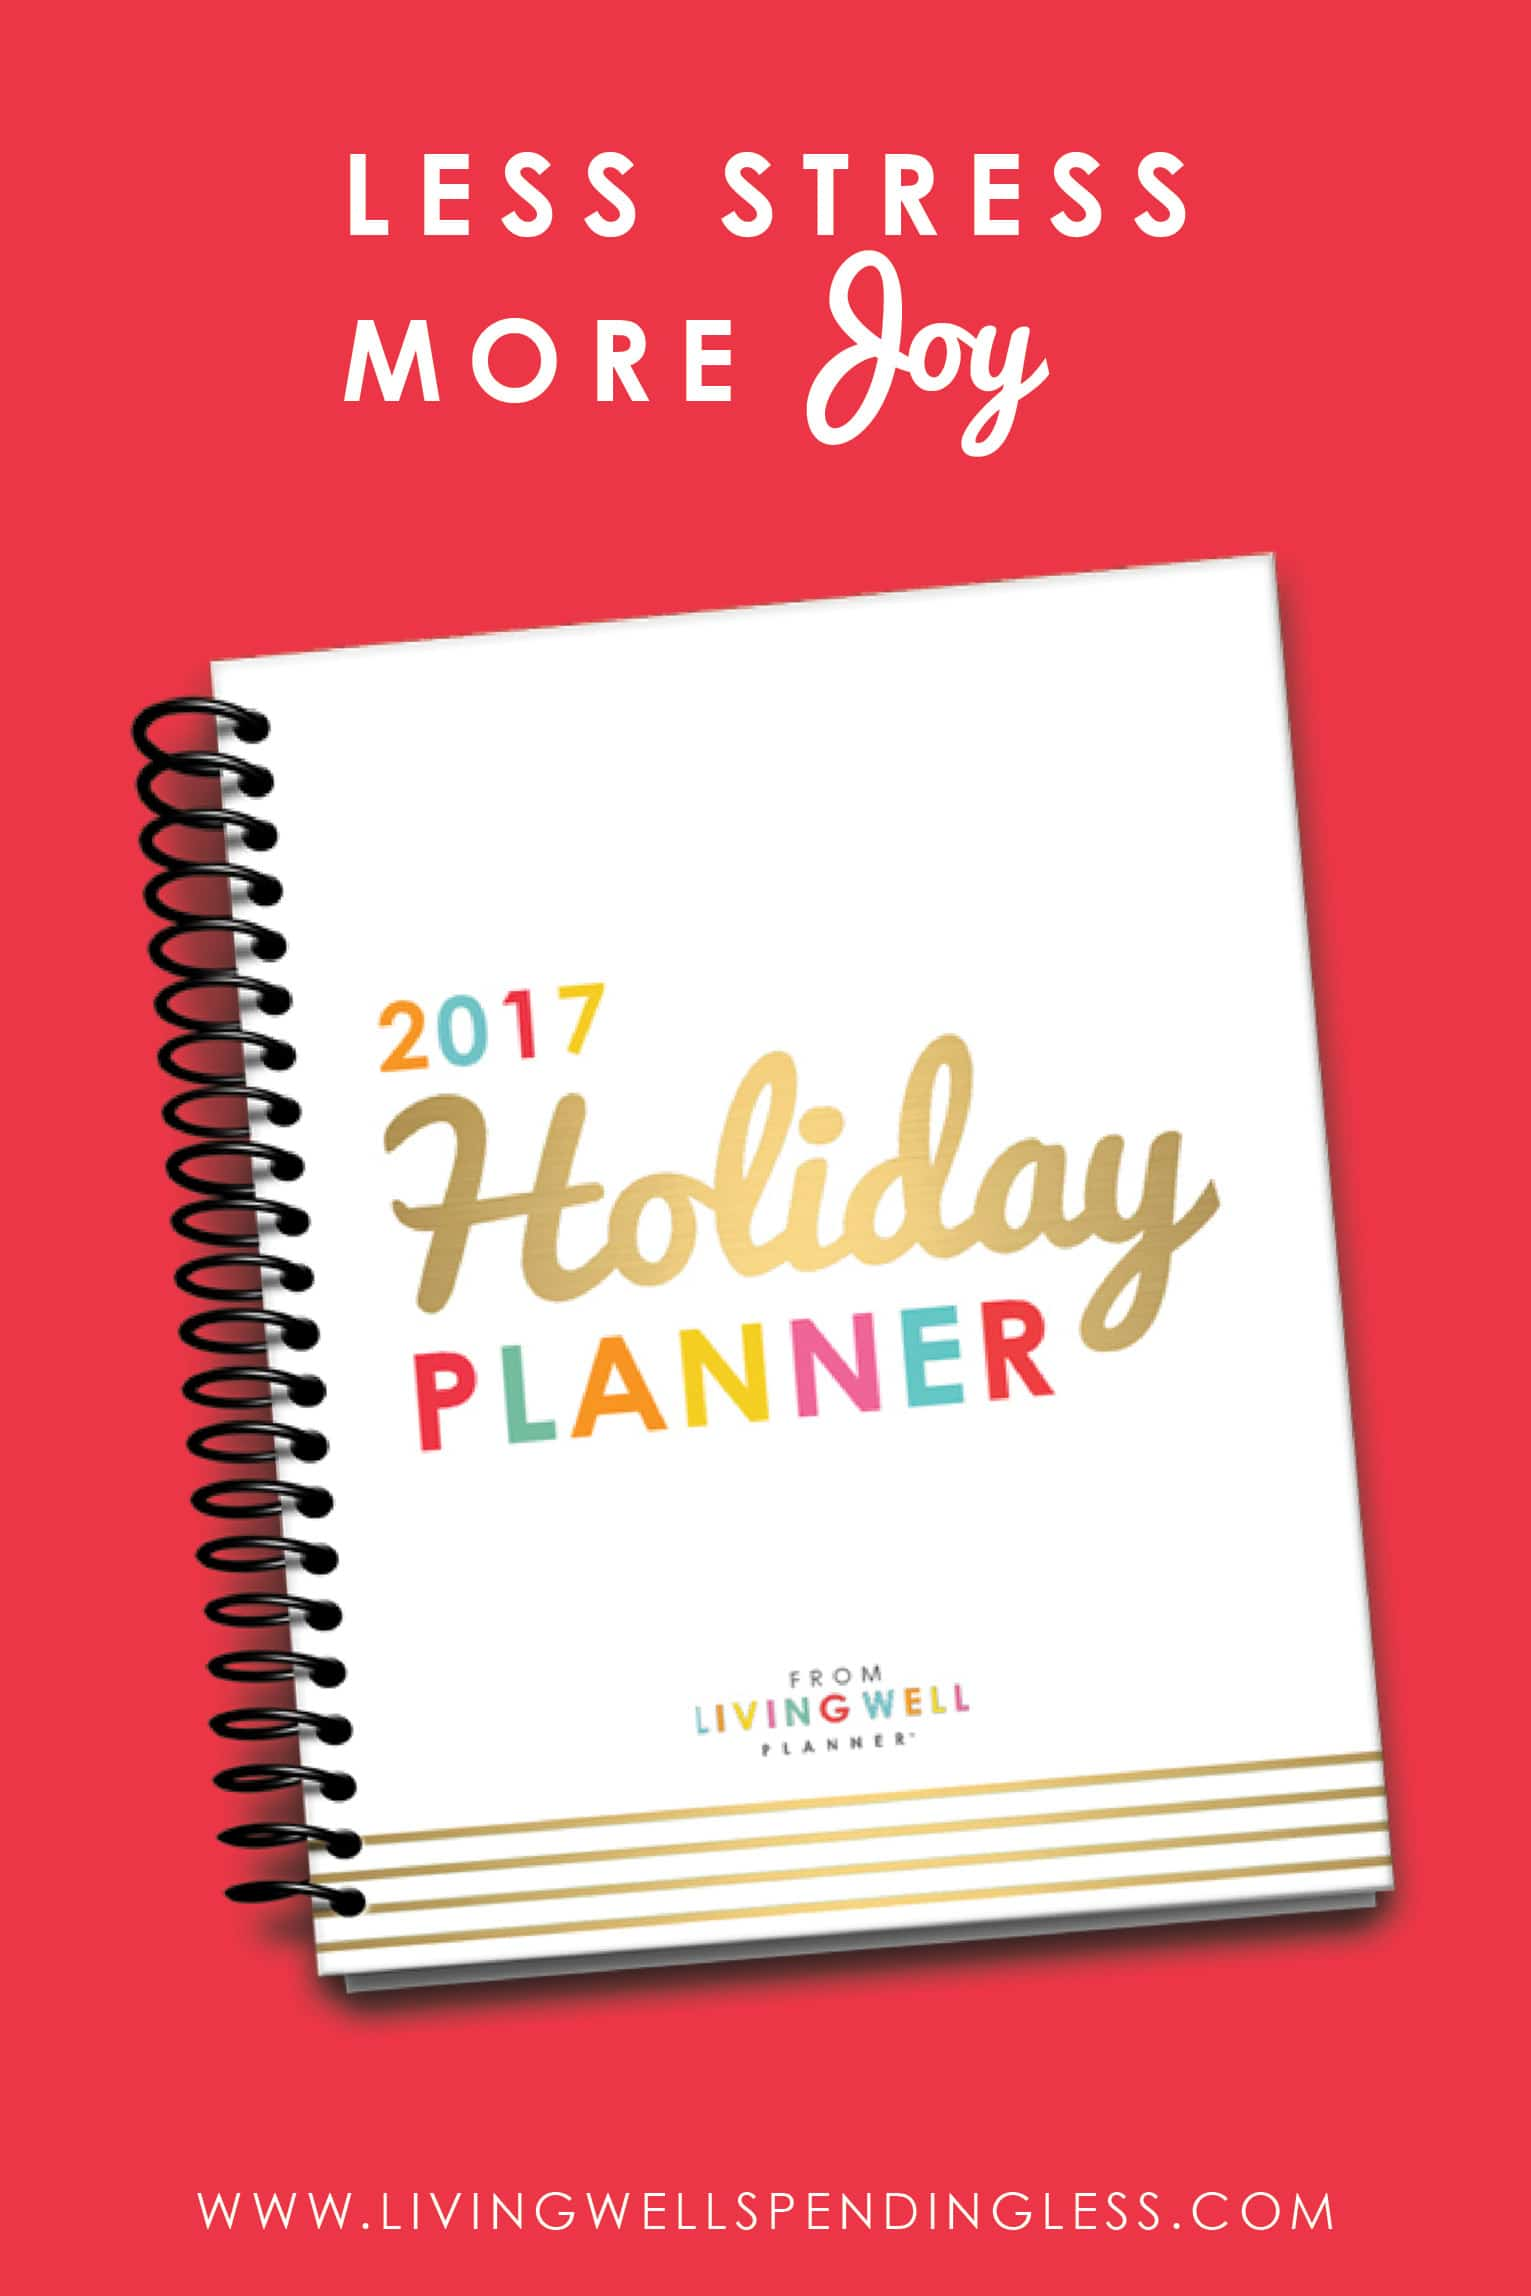 2017 Holiday Planner   Living Well Spending Less Holiday Planner   Stress Free Holidays   Holiday Planning with Less Stress